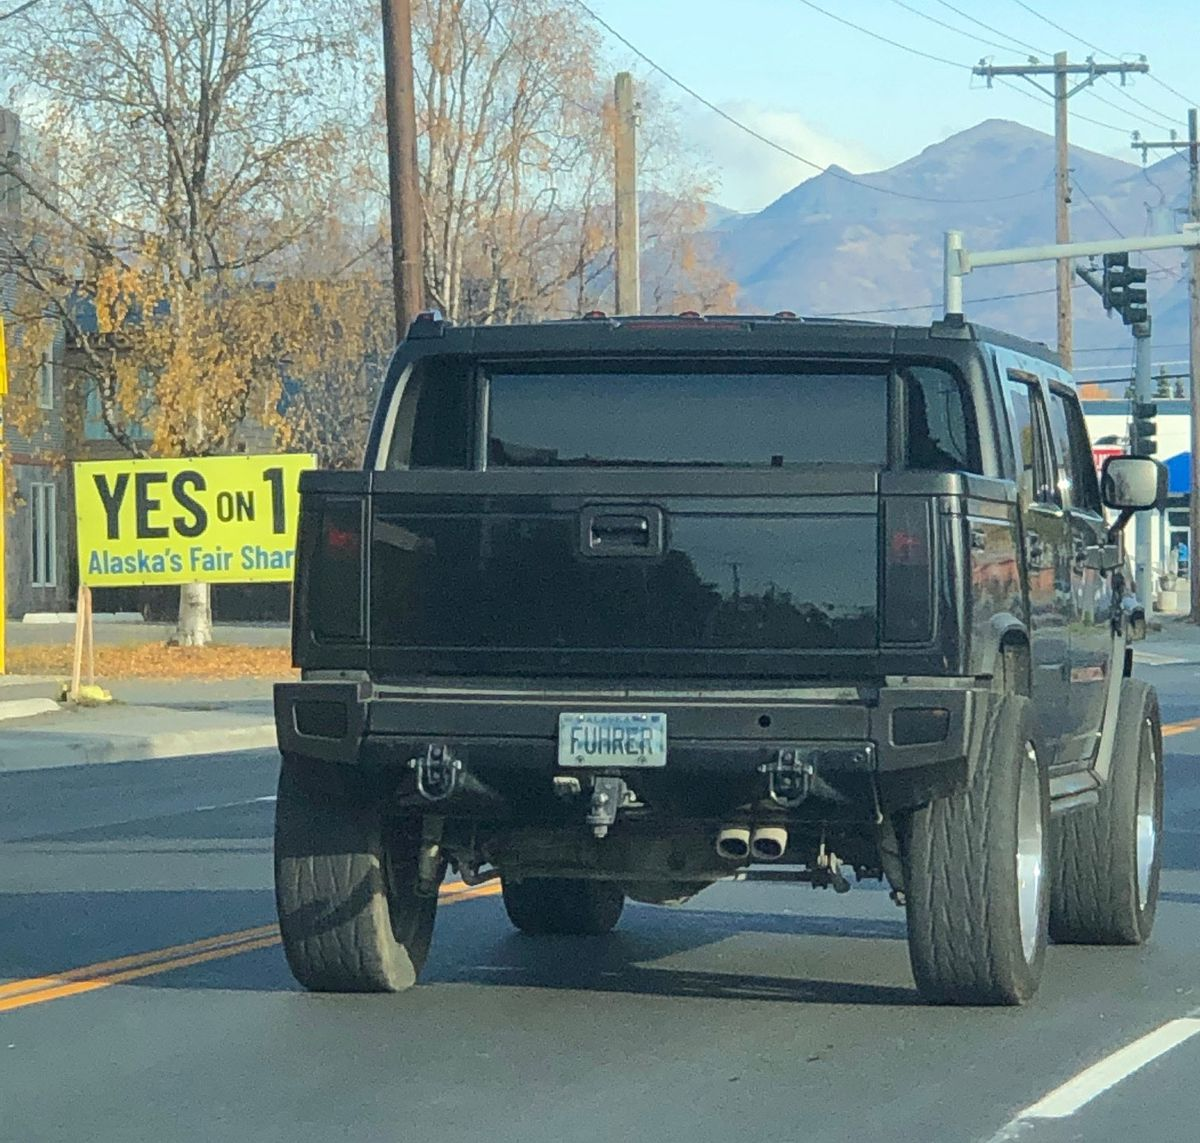 In October 2020, Anchorage resident Eva Gardner saw a black Hummer SUV with the license plate